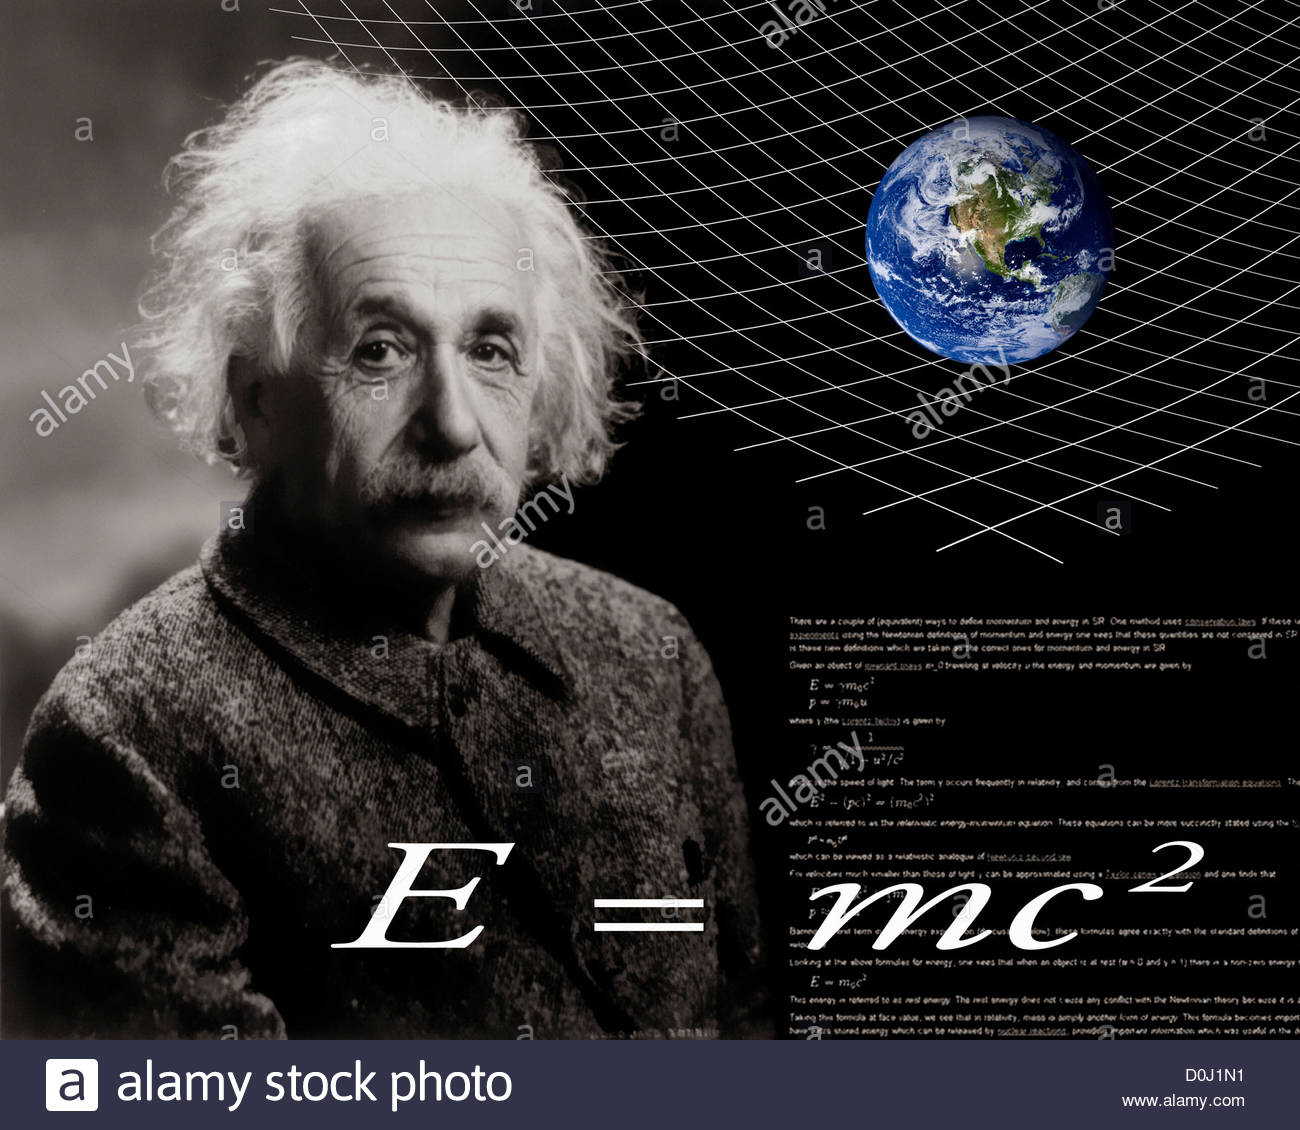 012 Photo Illustration Of Albert Einstein And The Theory Relativity D0j1n1 Essay Awesome Pdf Essays In Humanism 200 Words Full